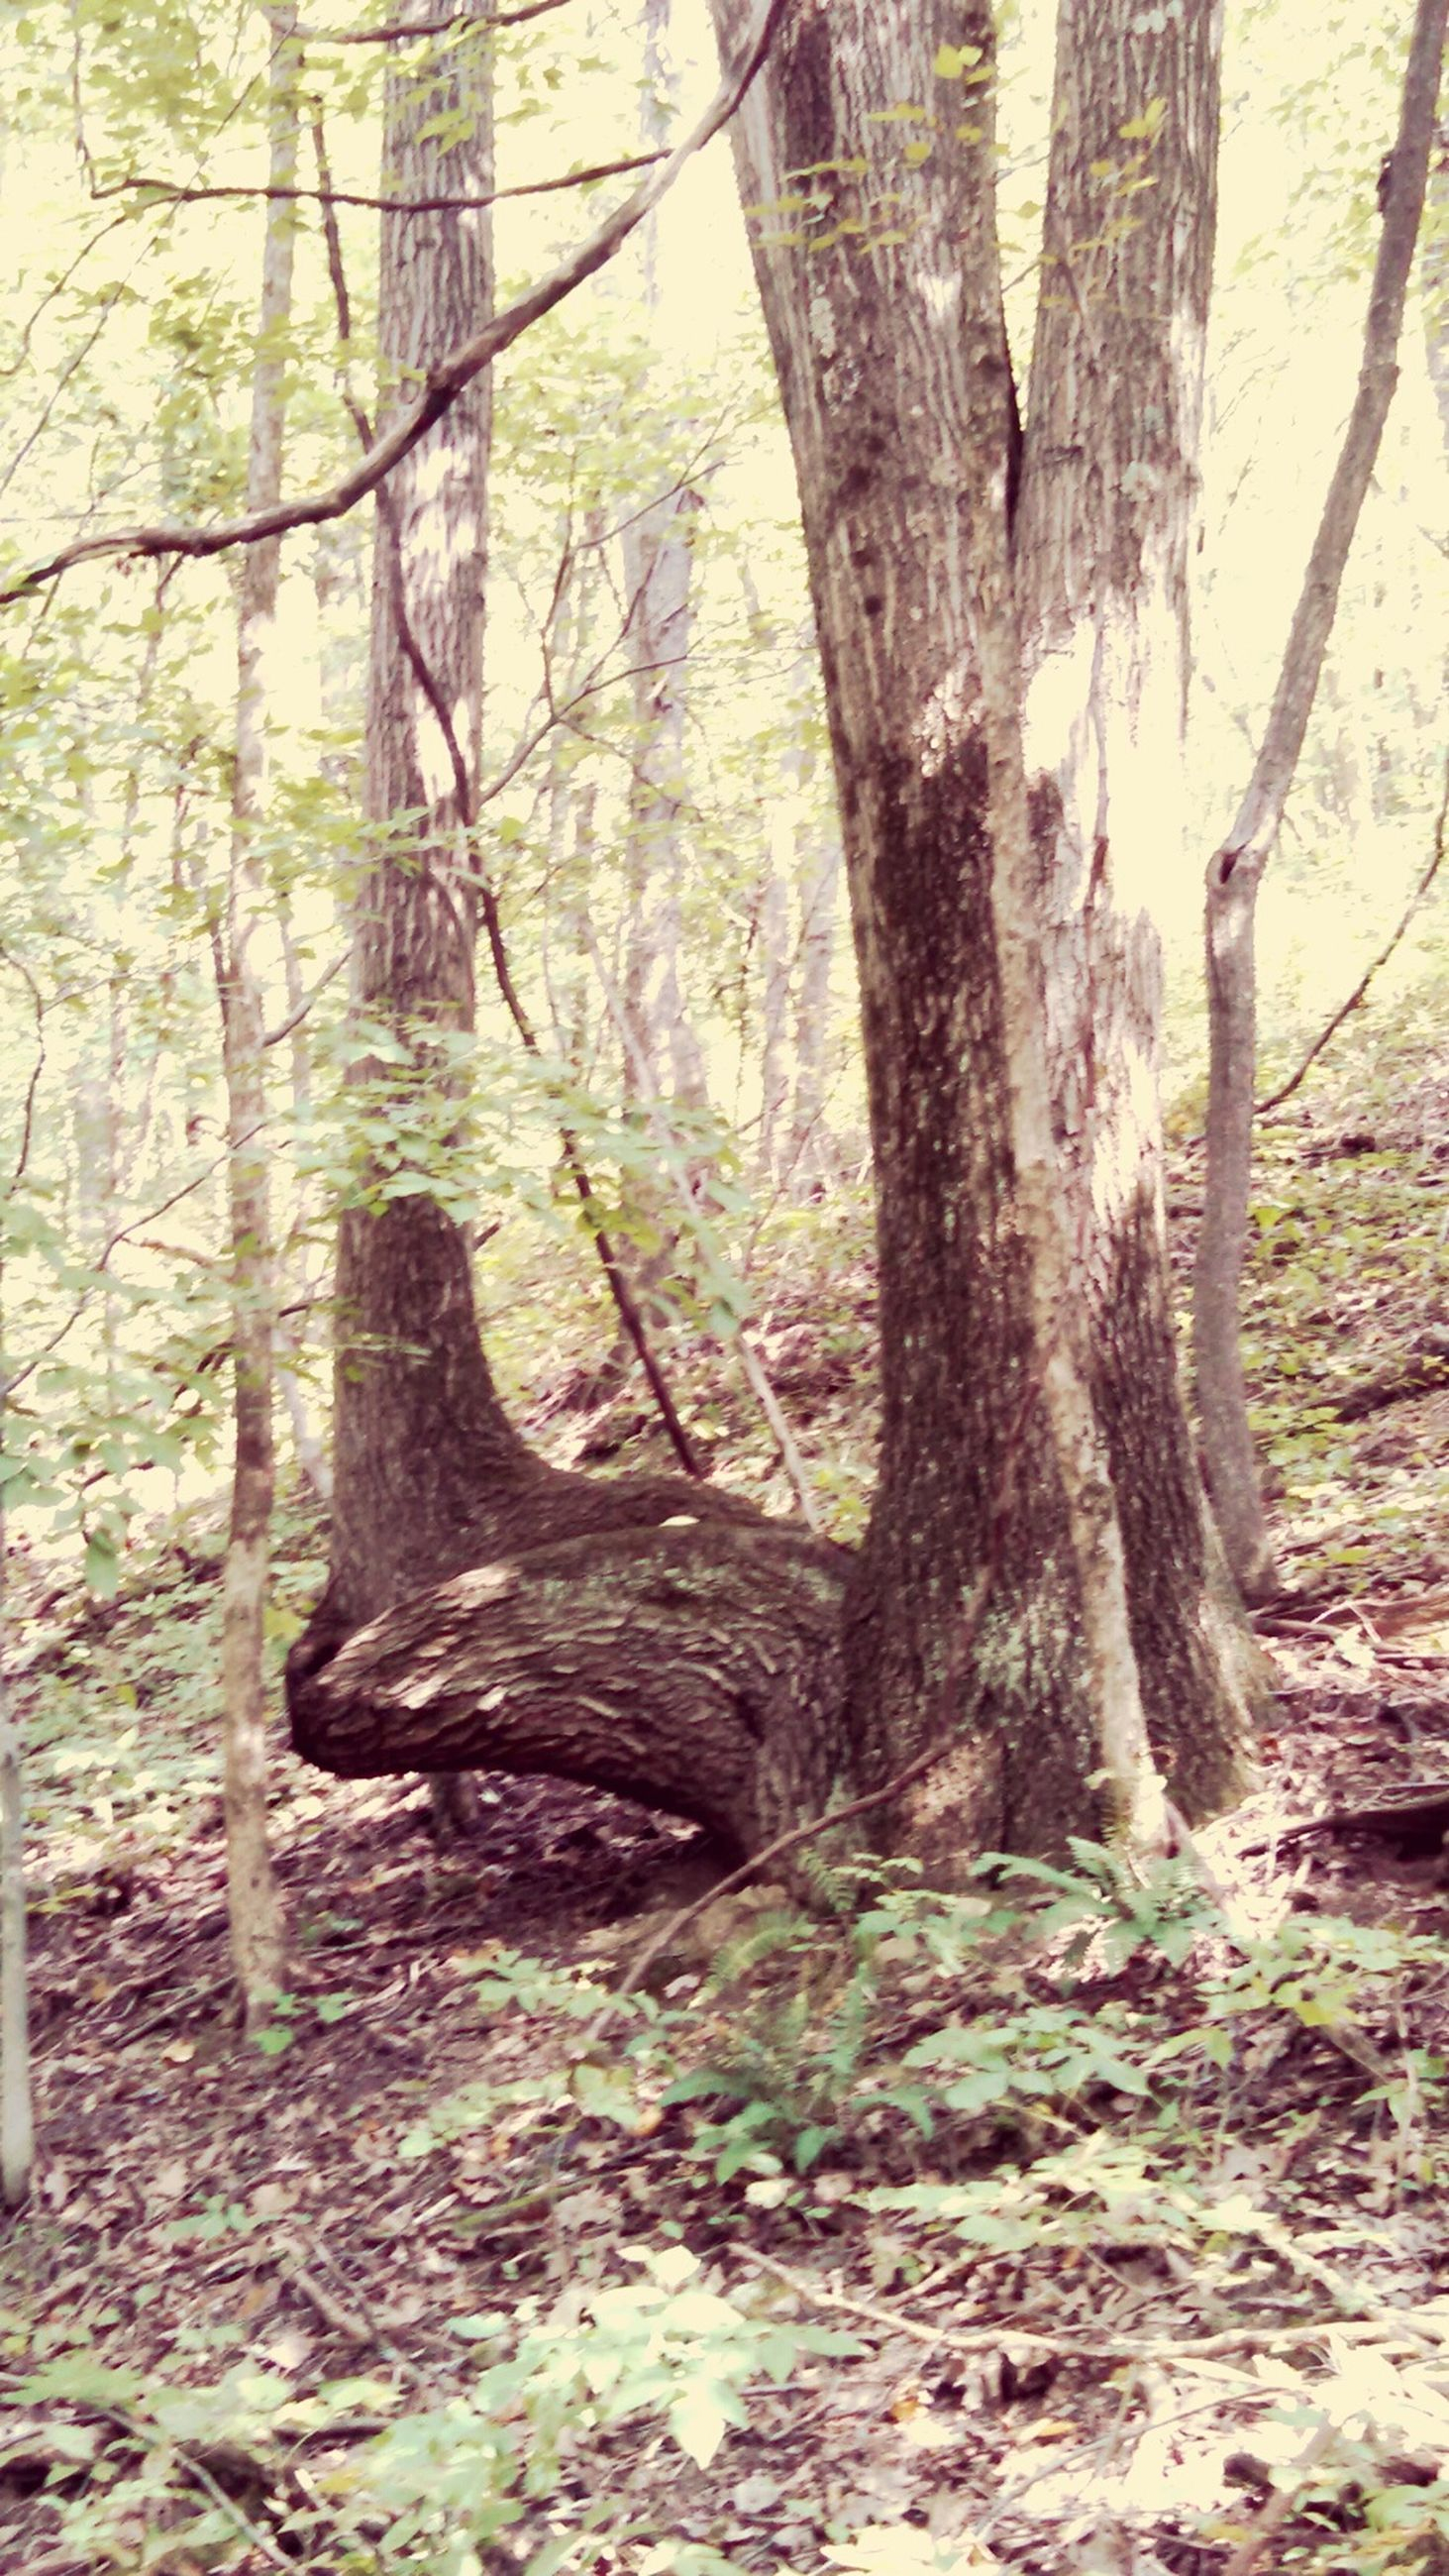 tree trunk, tree, forest, woodland, growth, branch, nature, tranquility, day, beauty in nature, wood - material, tranquil scene, no people, outdoors, root, sunlight, non-urban scene, landscape, woods, growing